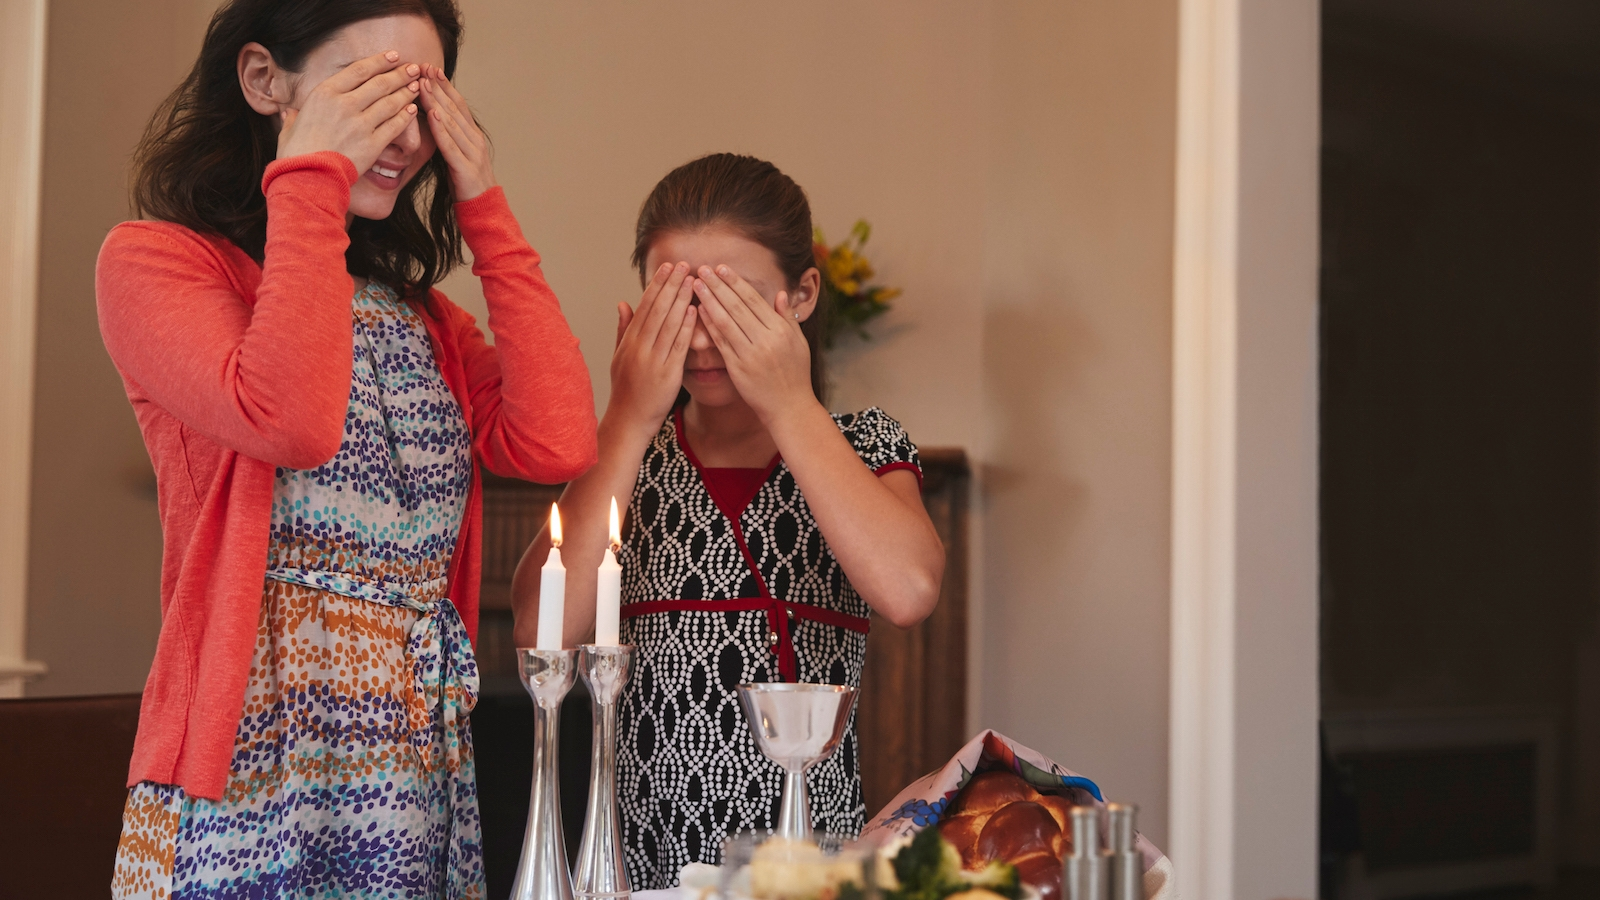 Jewish girl and mother cover eyes to recite Shabbat blessing